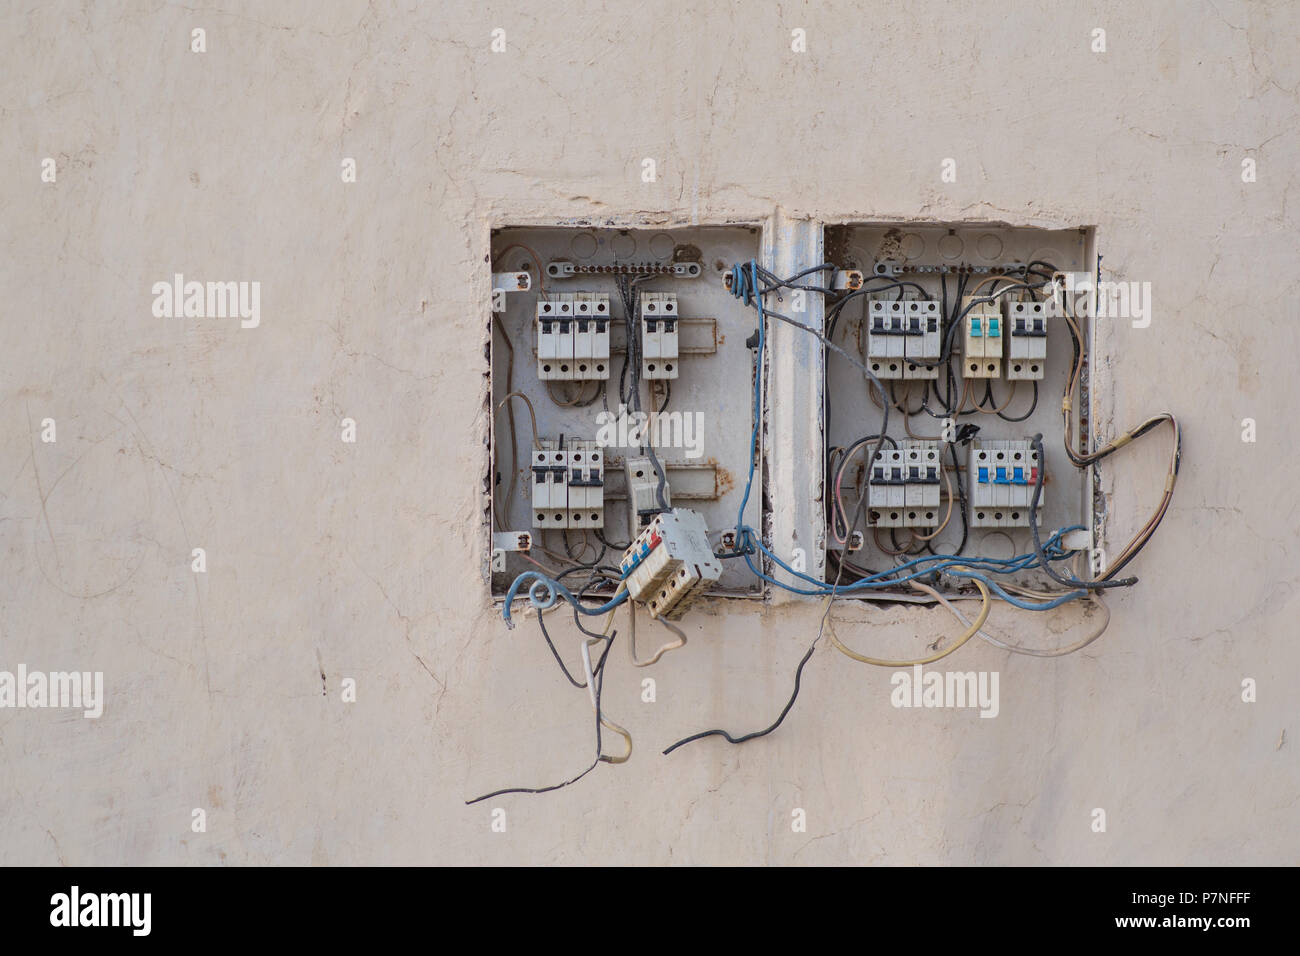 Old Electrical Fuse Box Stock Photos House Wiring Junction A Broken Image